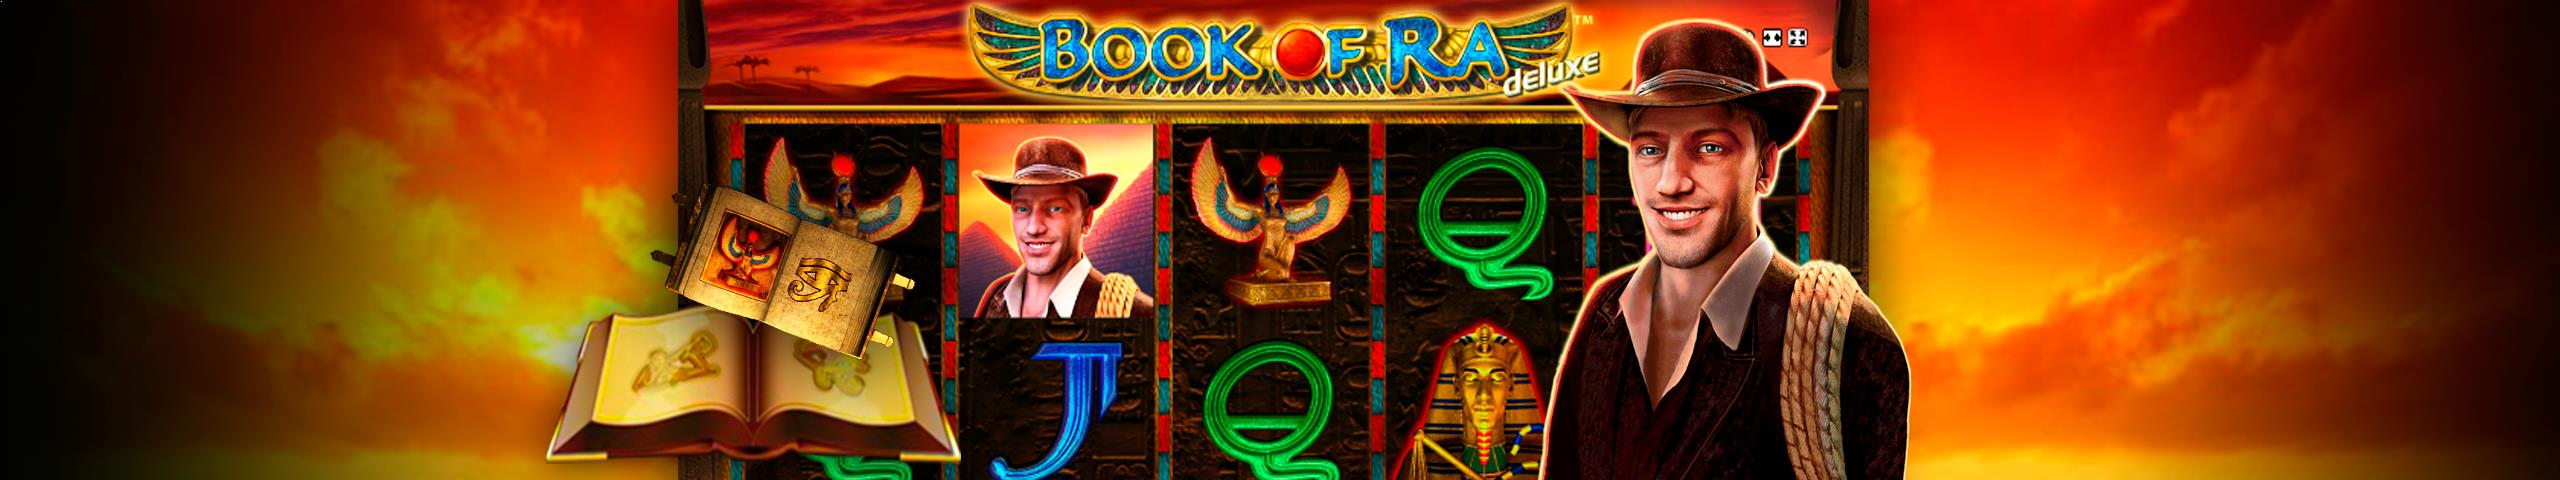 Book Of Ra multabafta Novomatic jocuri slot slider